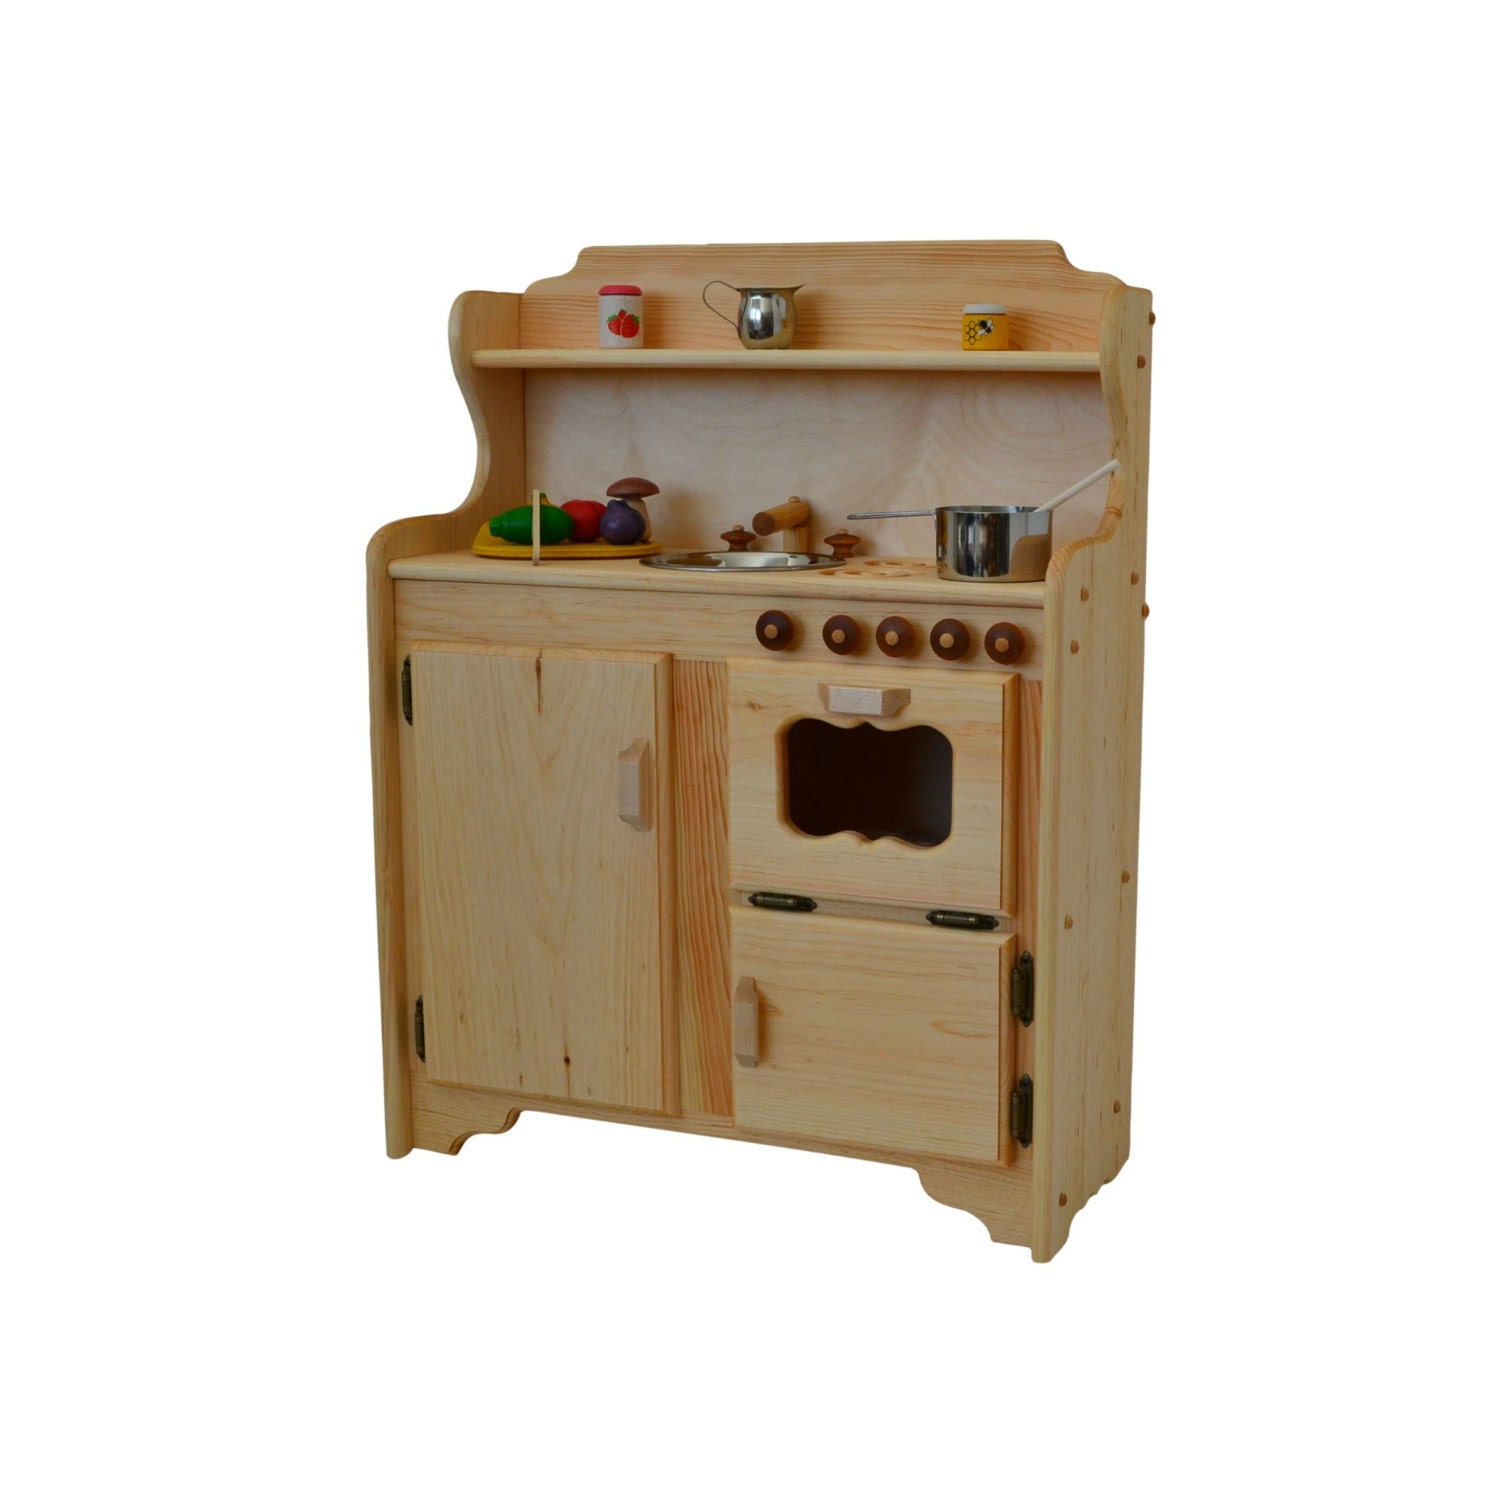 Waldorf play stove wooden toy kitchen